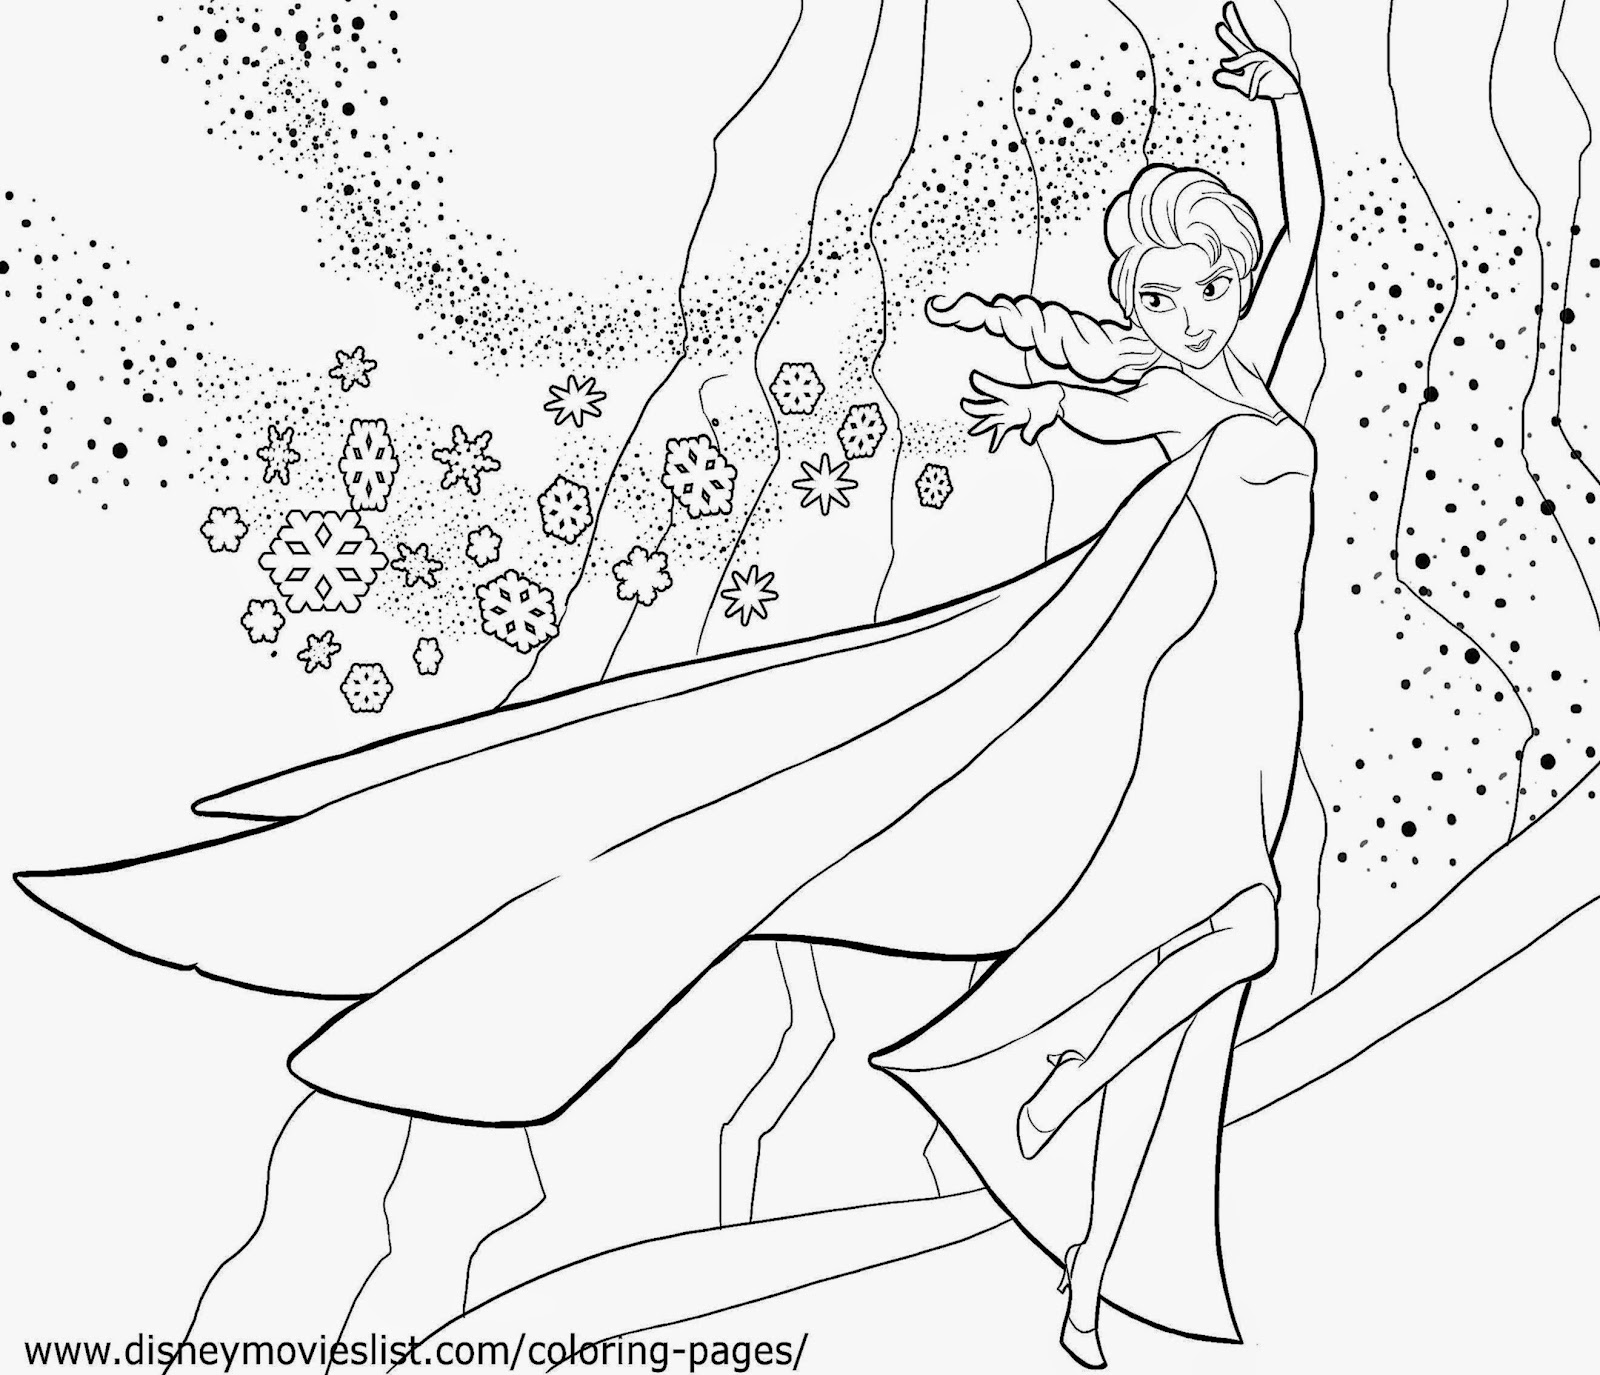 Disney Frozen Coloring Games line Free printable coloring pages